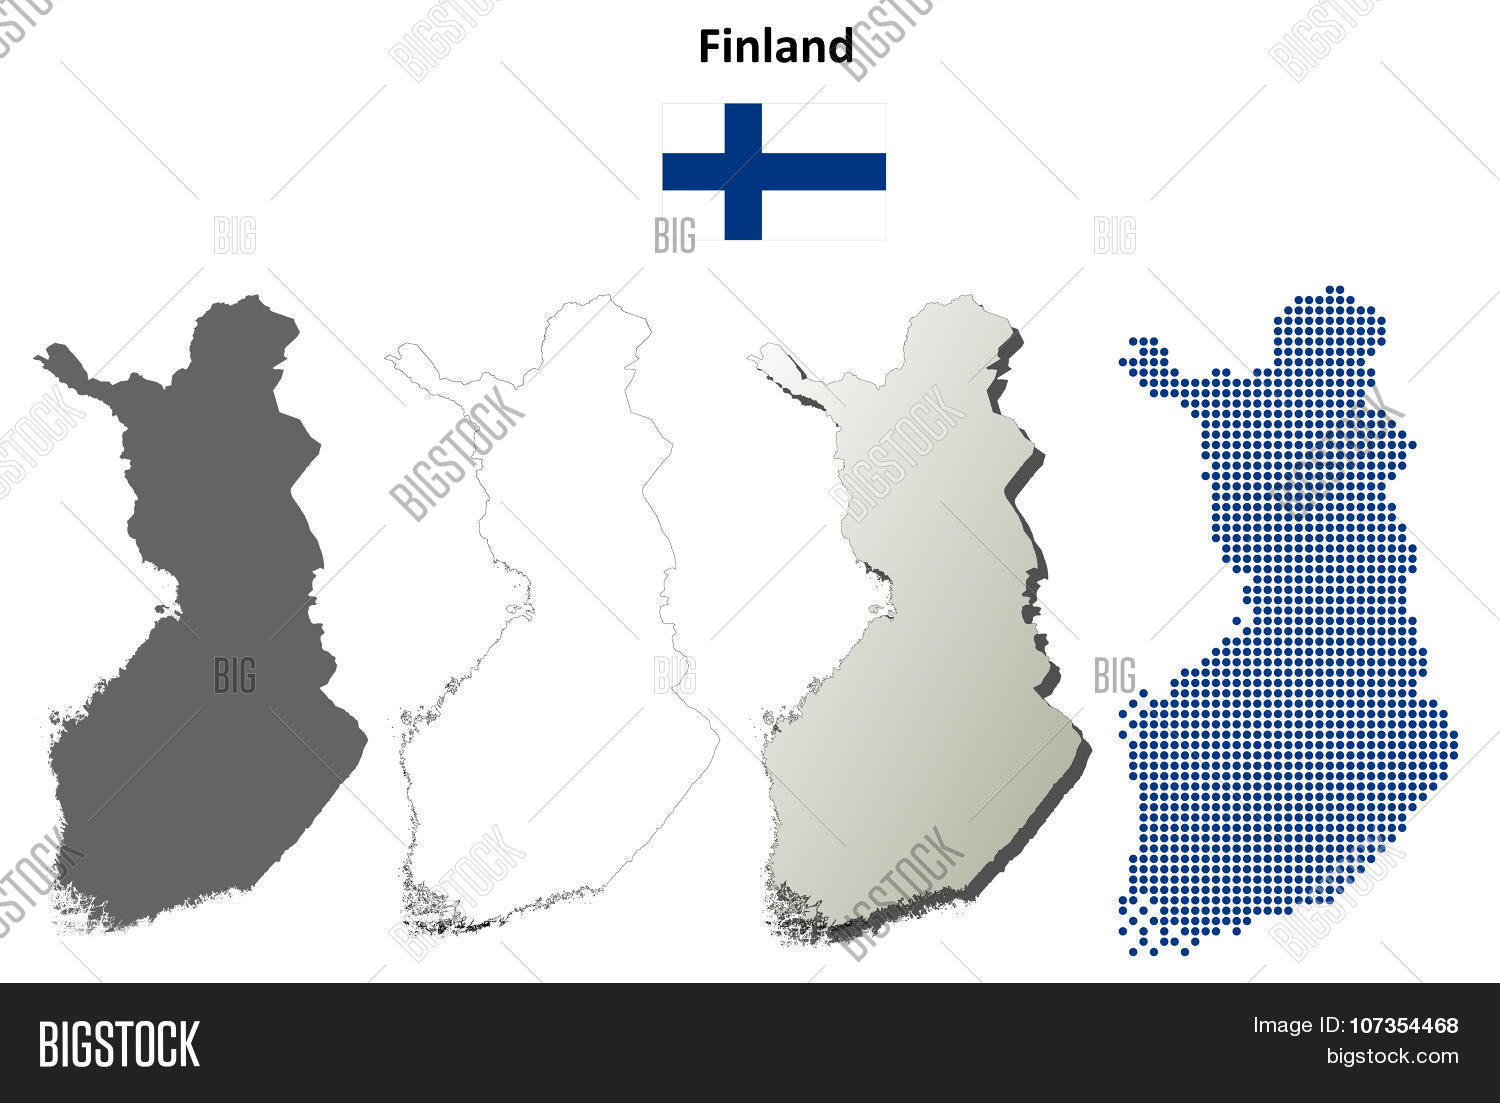 Finland Outline Map Vector & Photo (Free Trial) | Bigstock